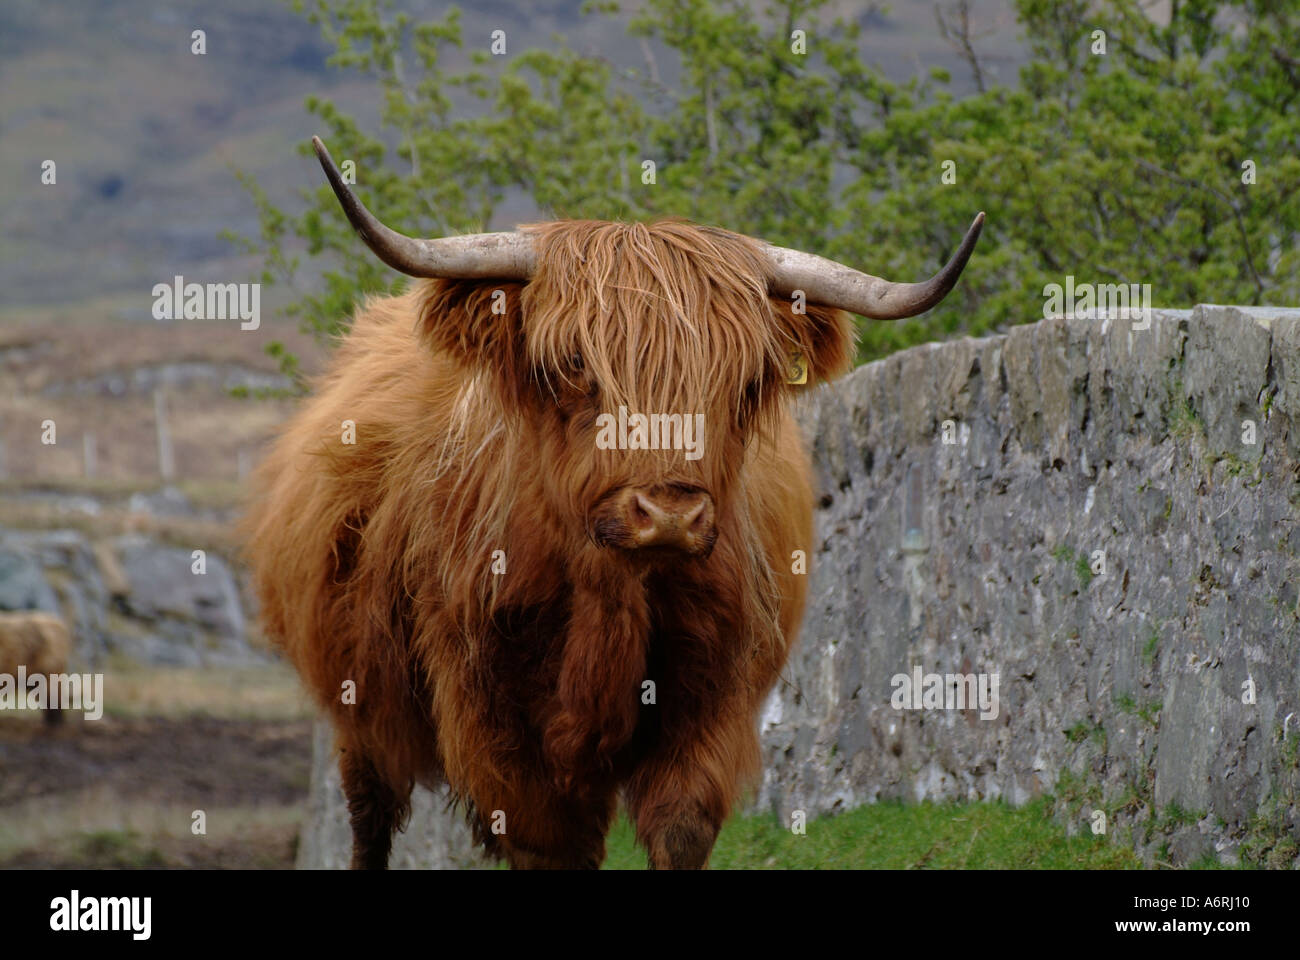 hairy cow woolly highland cattle aberdeen angus isle of mull inner